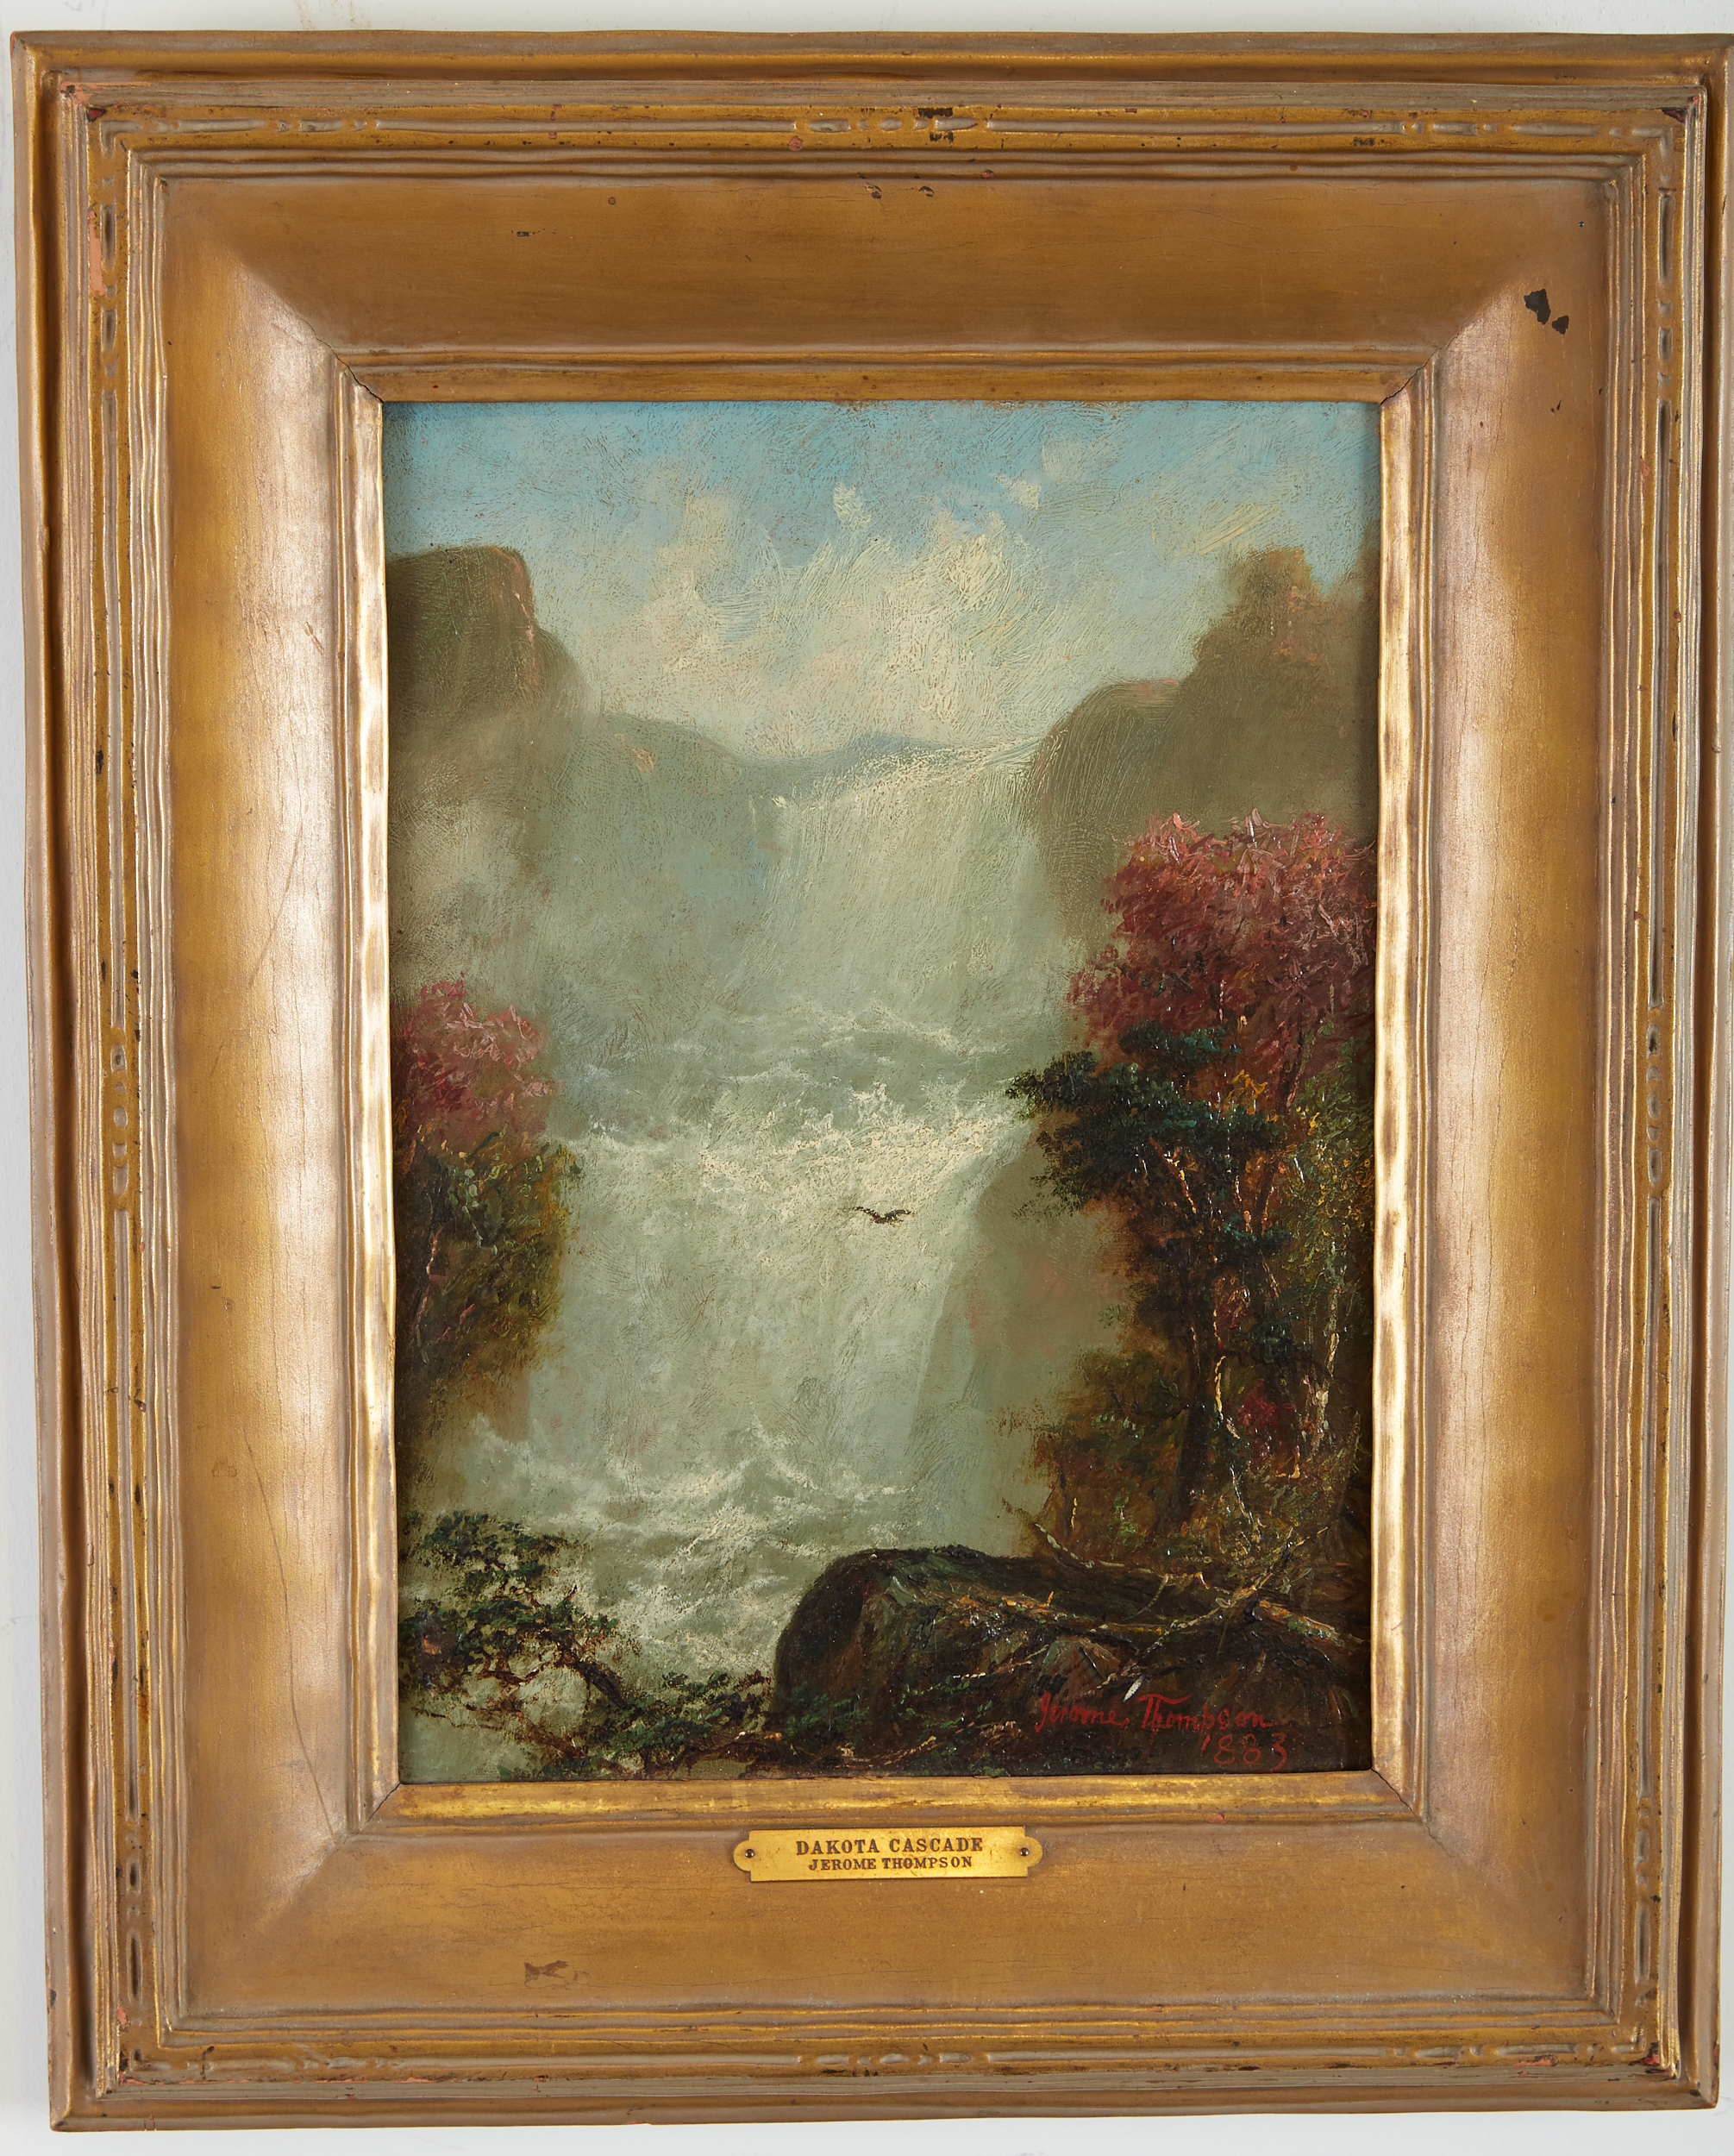 Lot 20 - Jerome B. Thompson Dakota Cascade Oil on Panel Painting